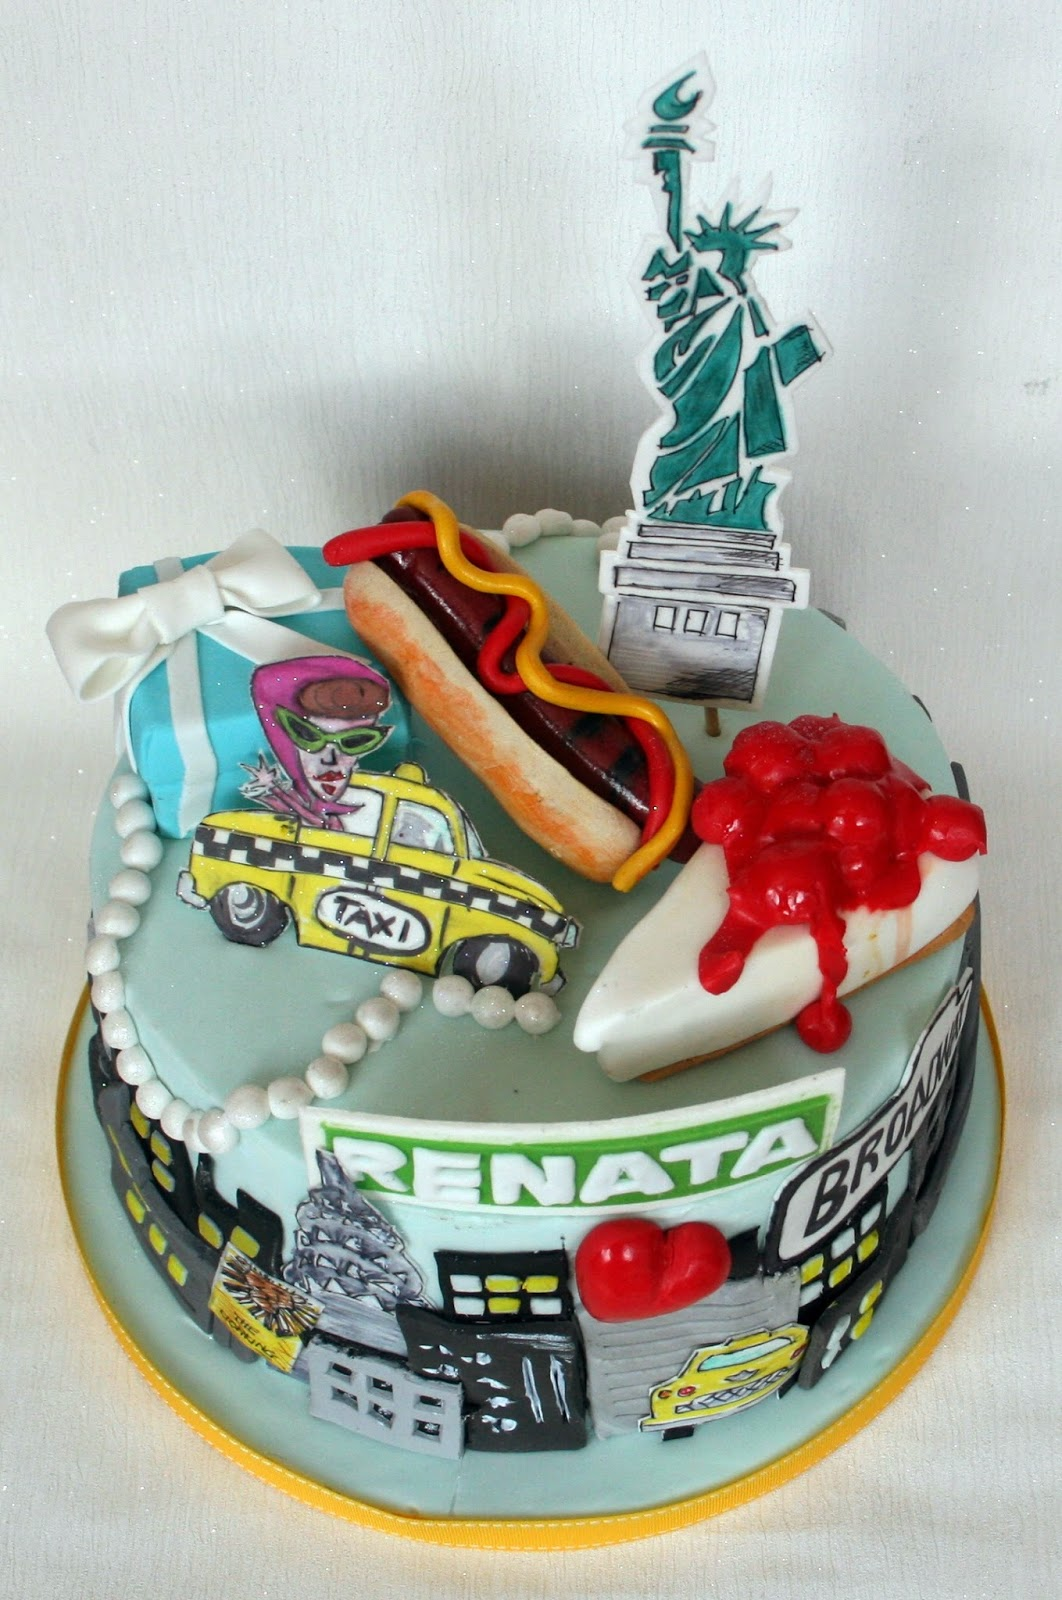 Images Of Birthday Cake New : The Perfectionist Confectionist: New York, New York